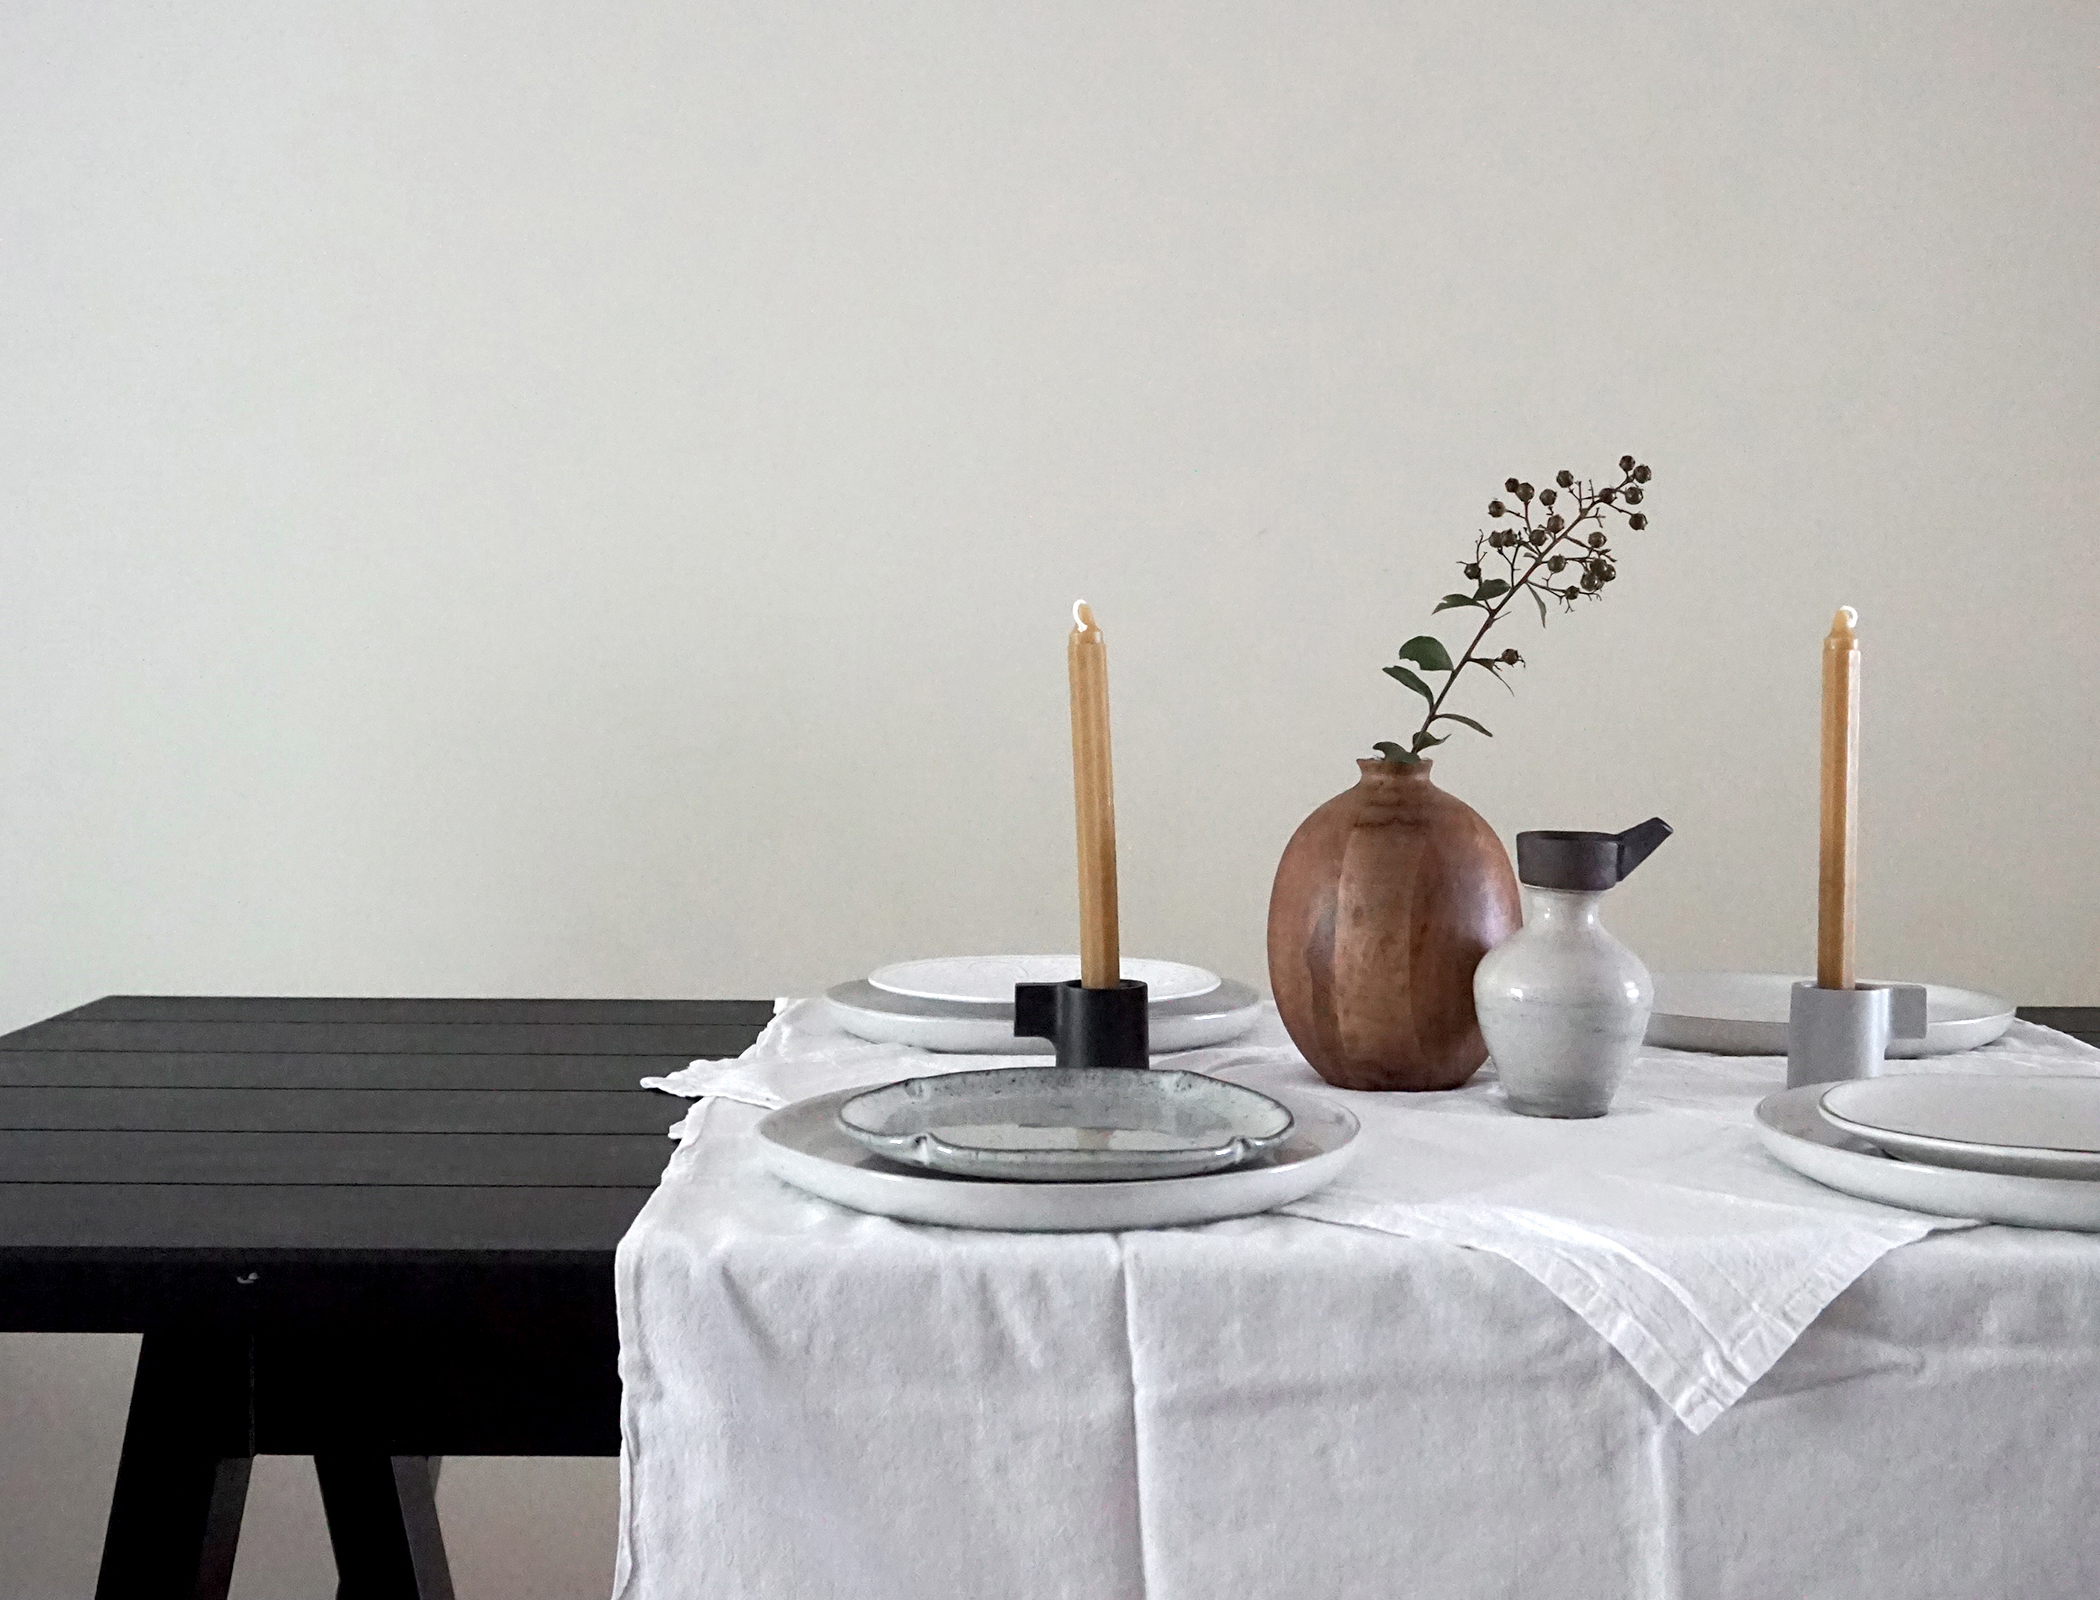 Nordic Table Set with Candles_edited_small_cropped.jpg